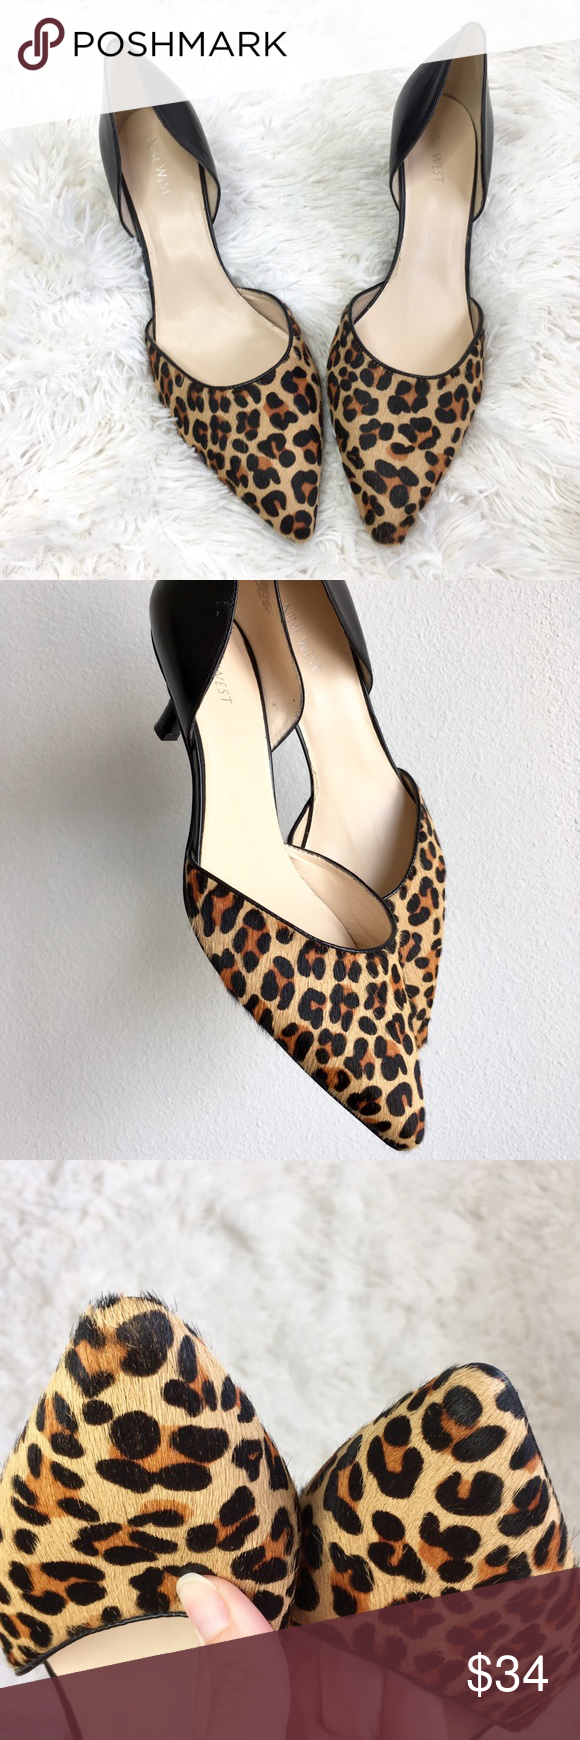 932097eb8f9f Nine West D'orsay Leopard Print Kitten Heels Nine West D'orsay Leopard  Print Kitten Heels Size 10 Great pre-owned condition There is some slight  wear (see ...